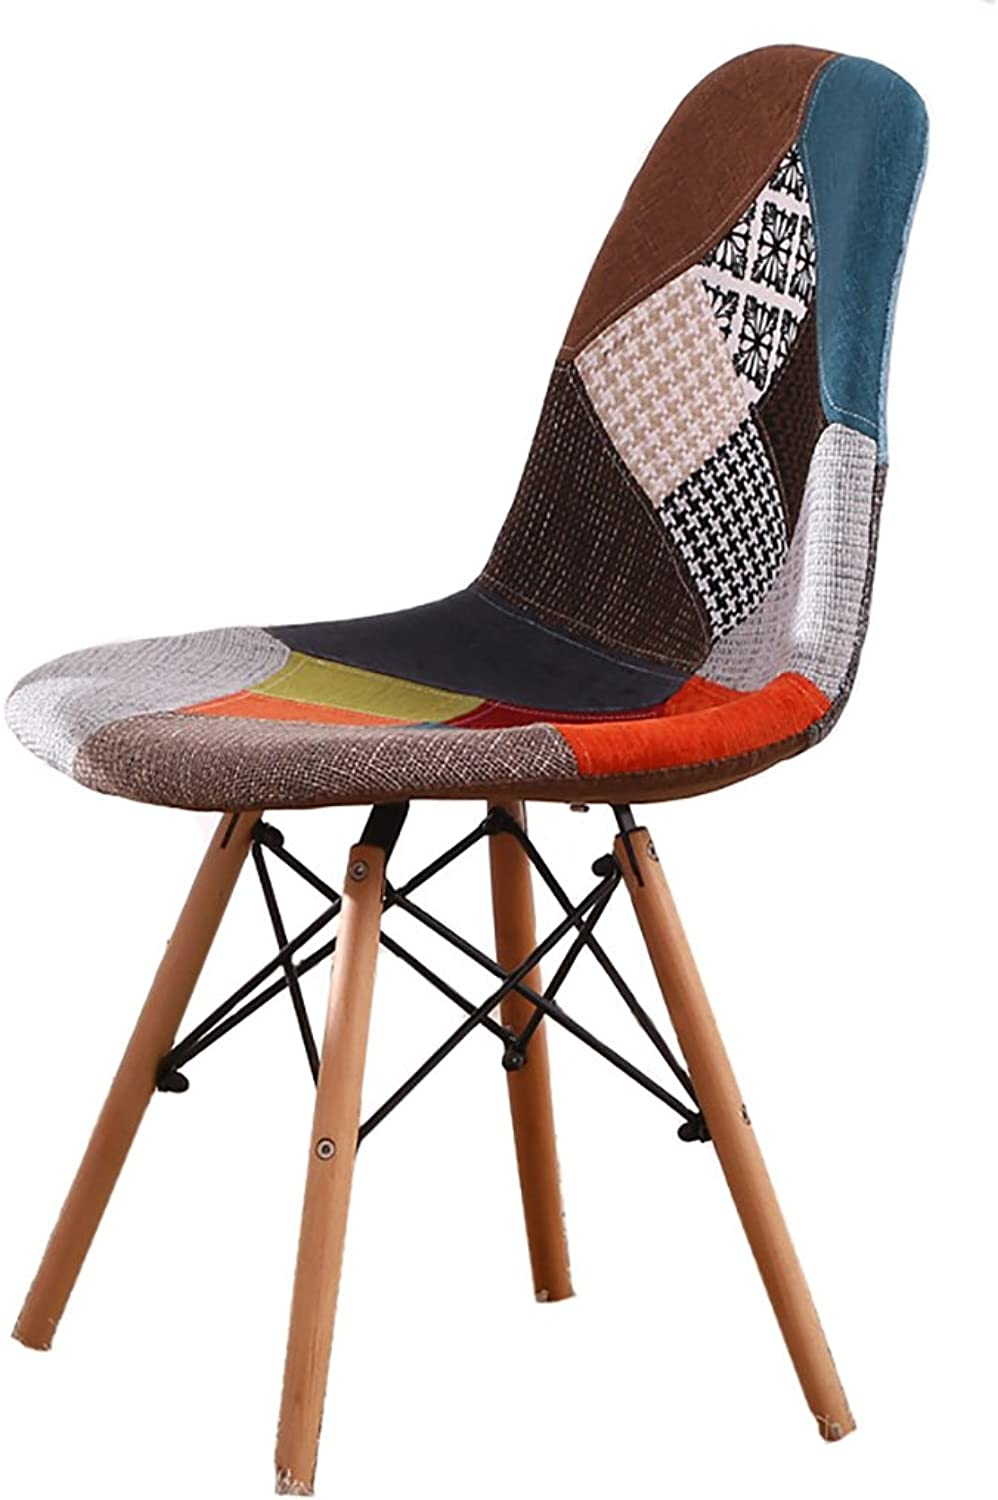 ZDY Designer Chairs Simple Fashion Casual Creative Computer Chairs Office Canyi Cloth Conference Chairs Folding Chairs